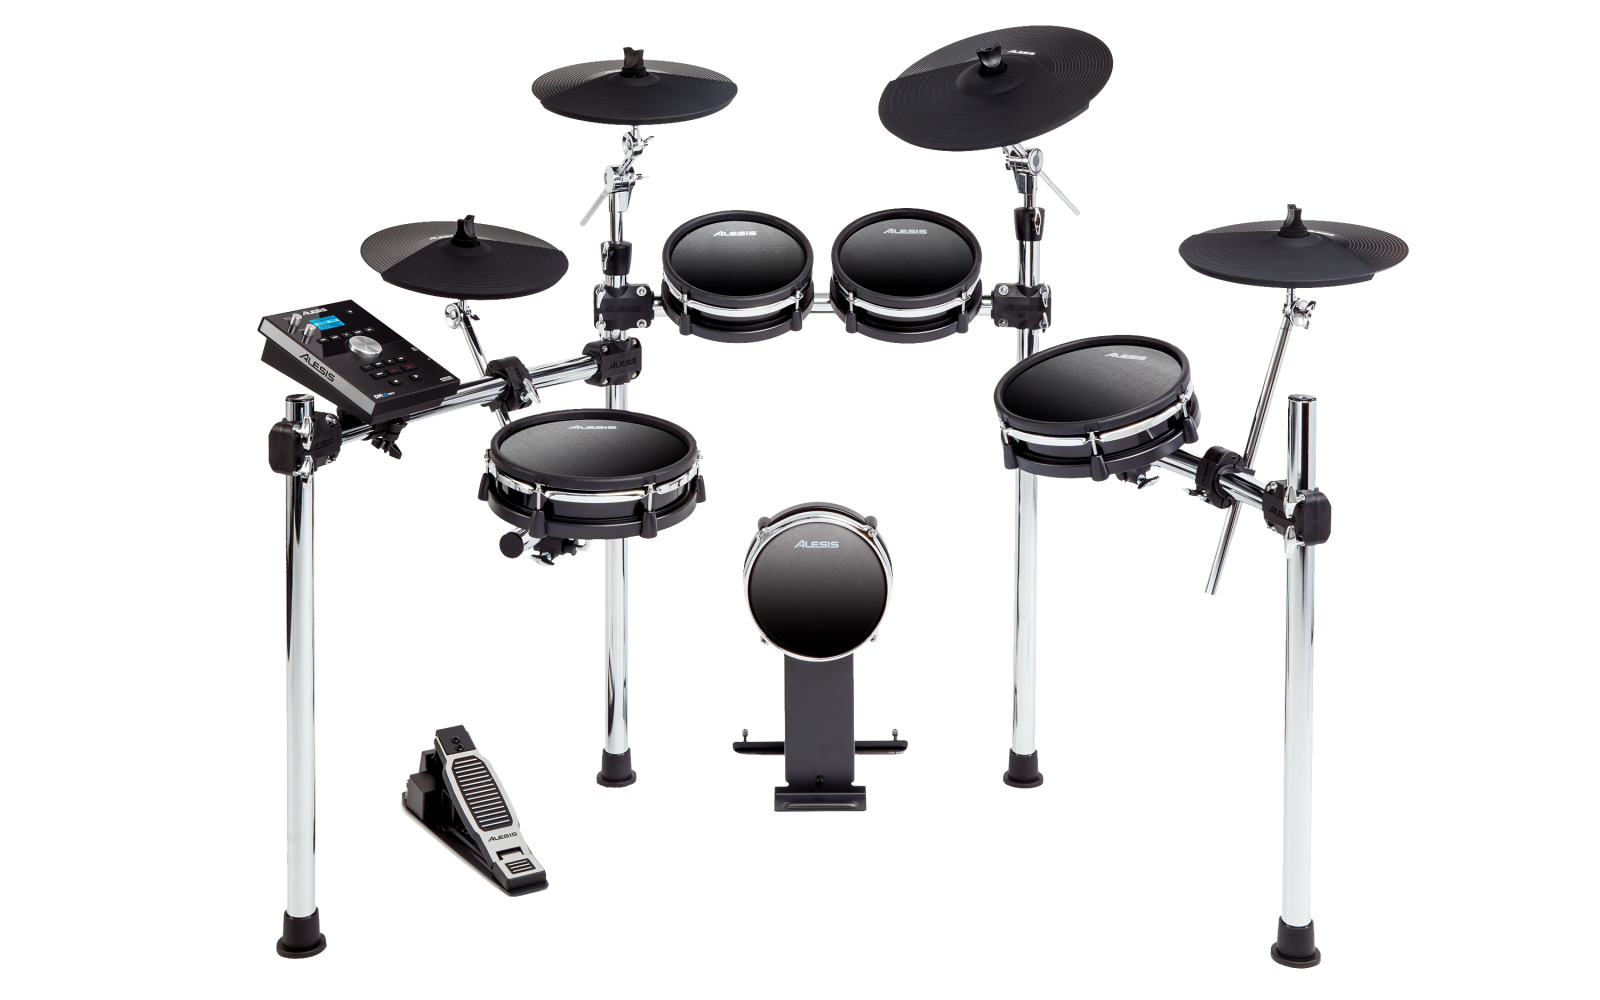 Alesis DM10 MKII Studio Kit - Frequently Asked Questions